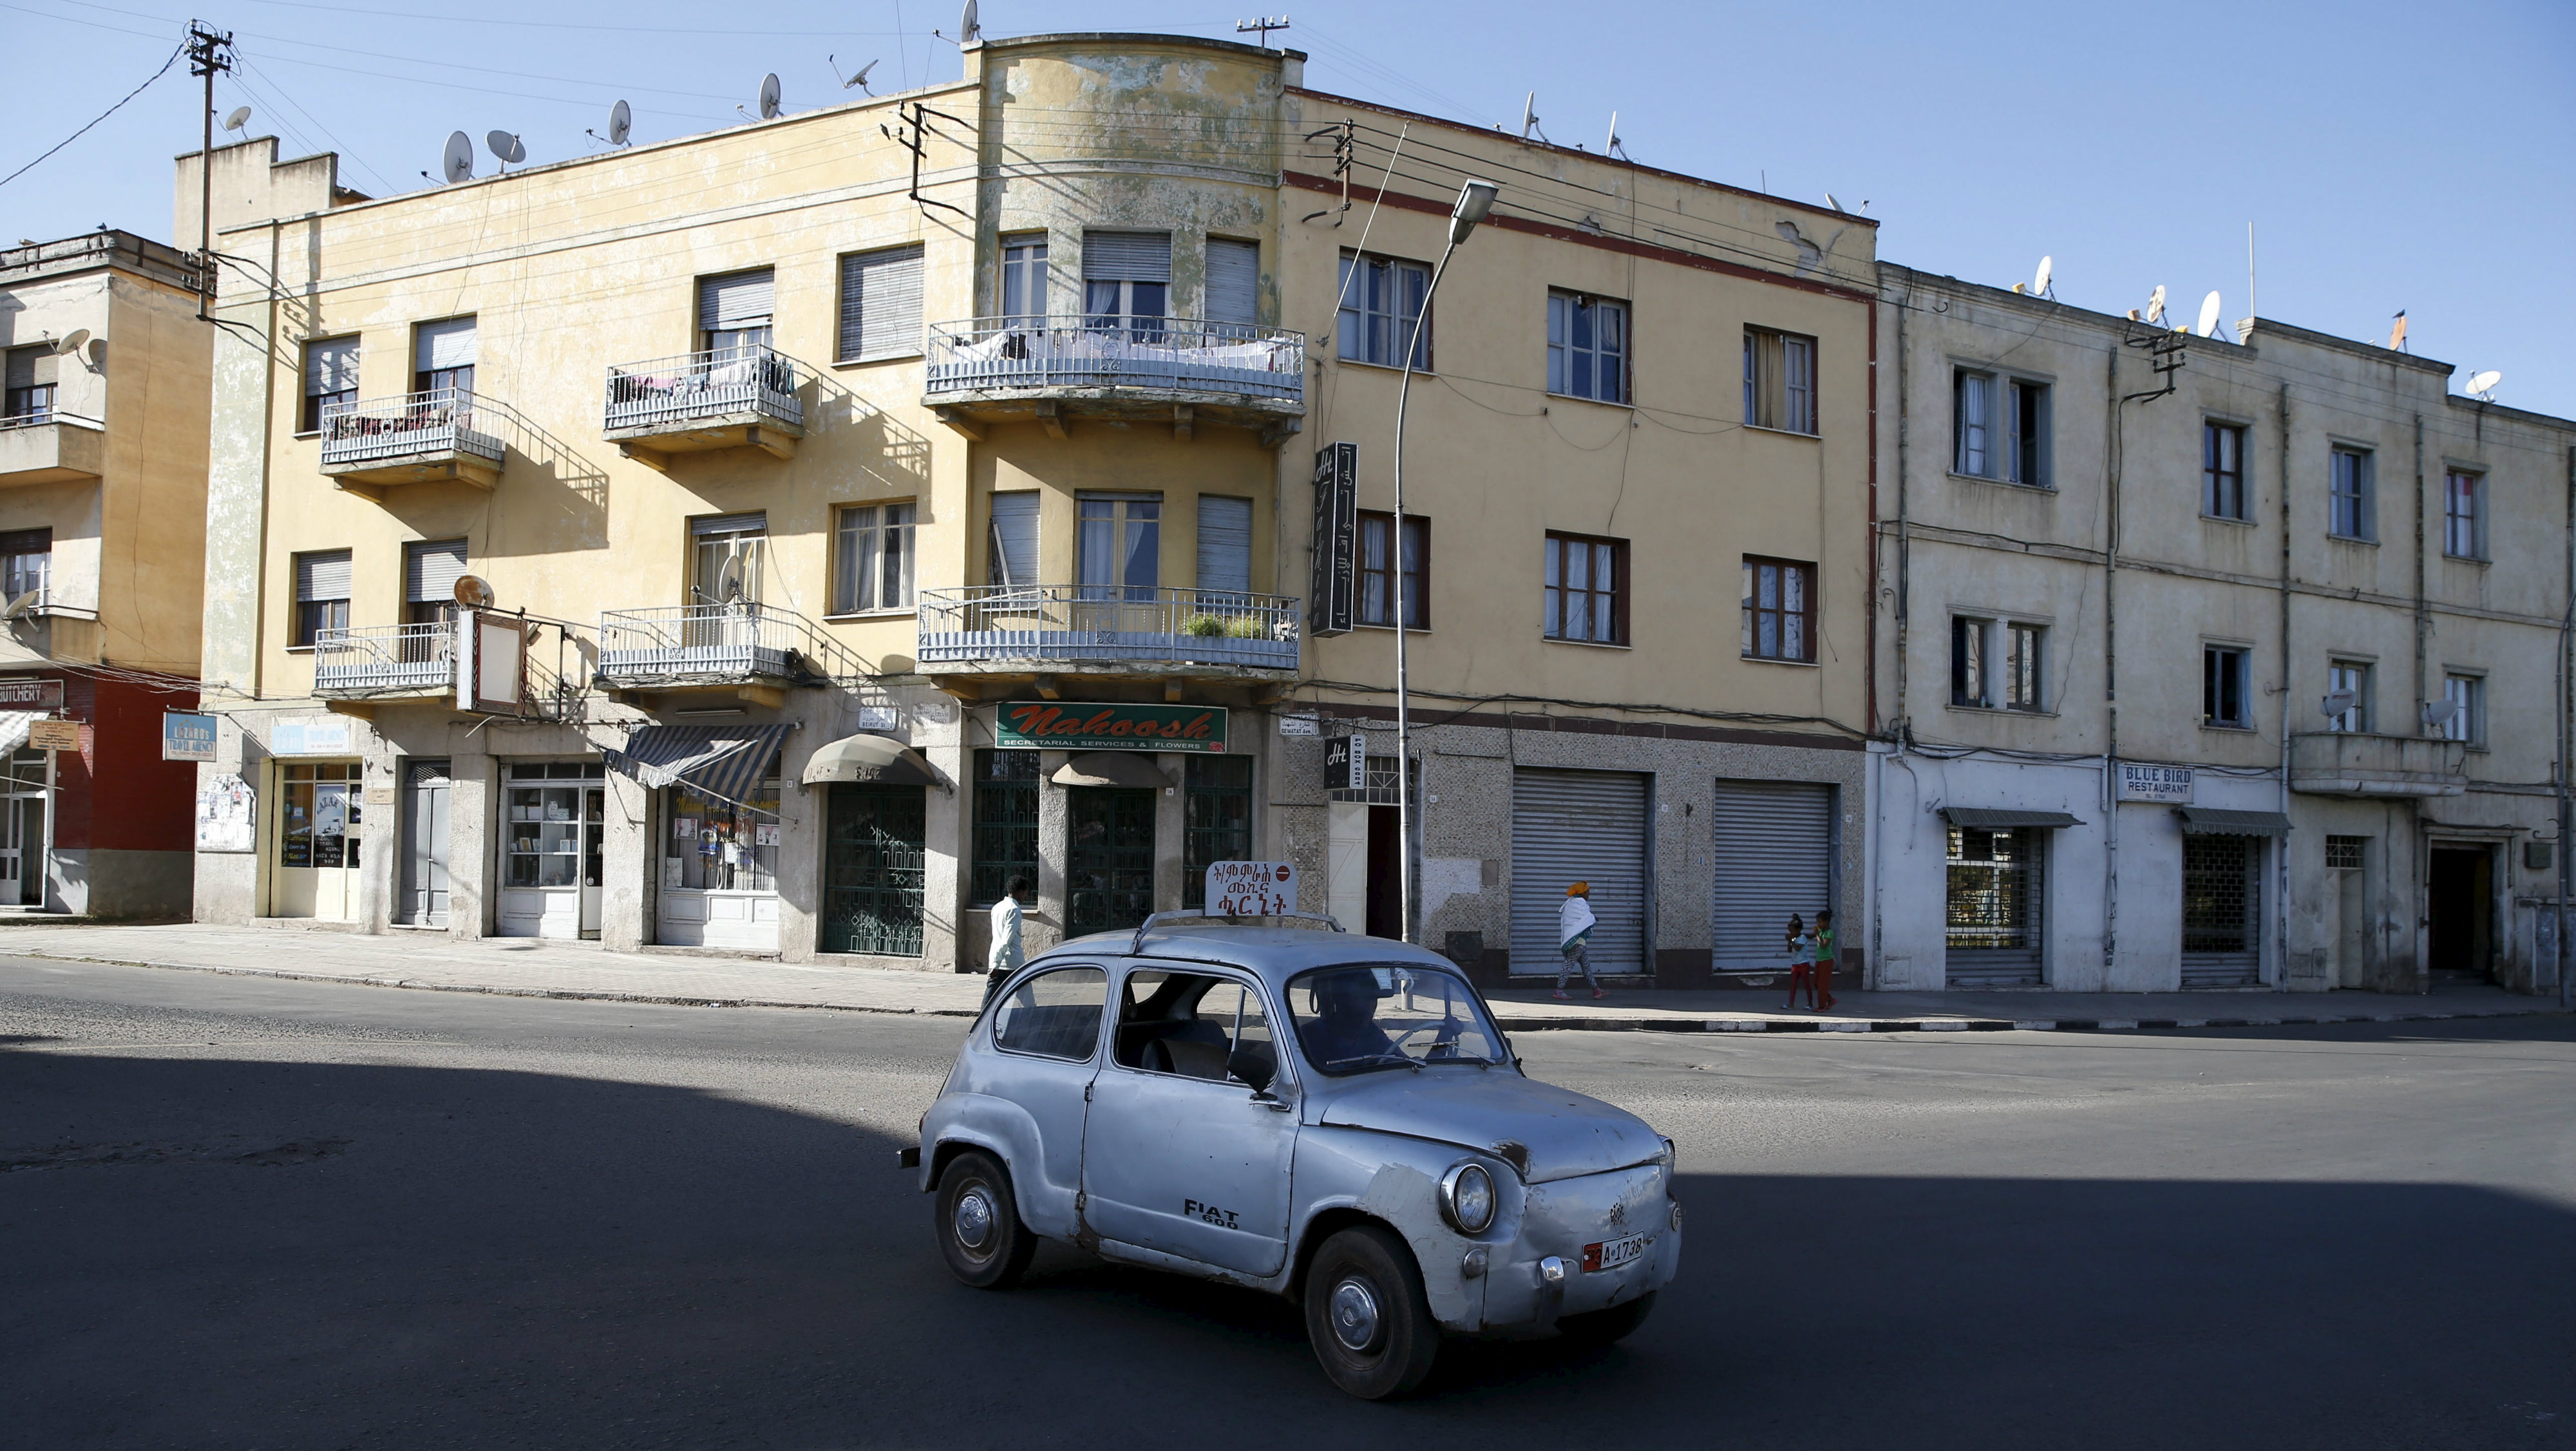 """A Fiat car drives along a street in Eritrea's capital Asmara, February 20, 2016. Eritrea's capital city boasts one of the world's finest collections of early 20th century architecture, which the authorities want declared a UNESCO World Heritage Site. When Italy's colonial experiment in Eritrea ended in 1941, it left behind an array of Rationalist, Futurist, Art Deco and other styles of Modernism in Asmara, a city they nicknamed """"La Piccola Roma"""" or """"Little Rome""""."""